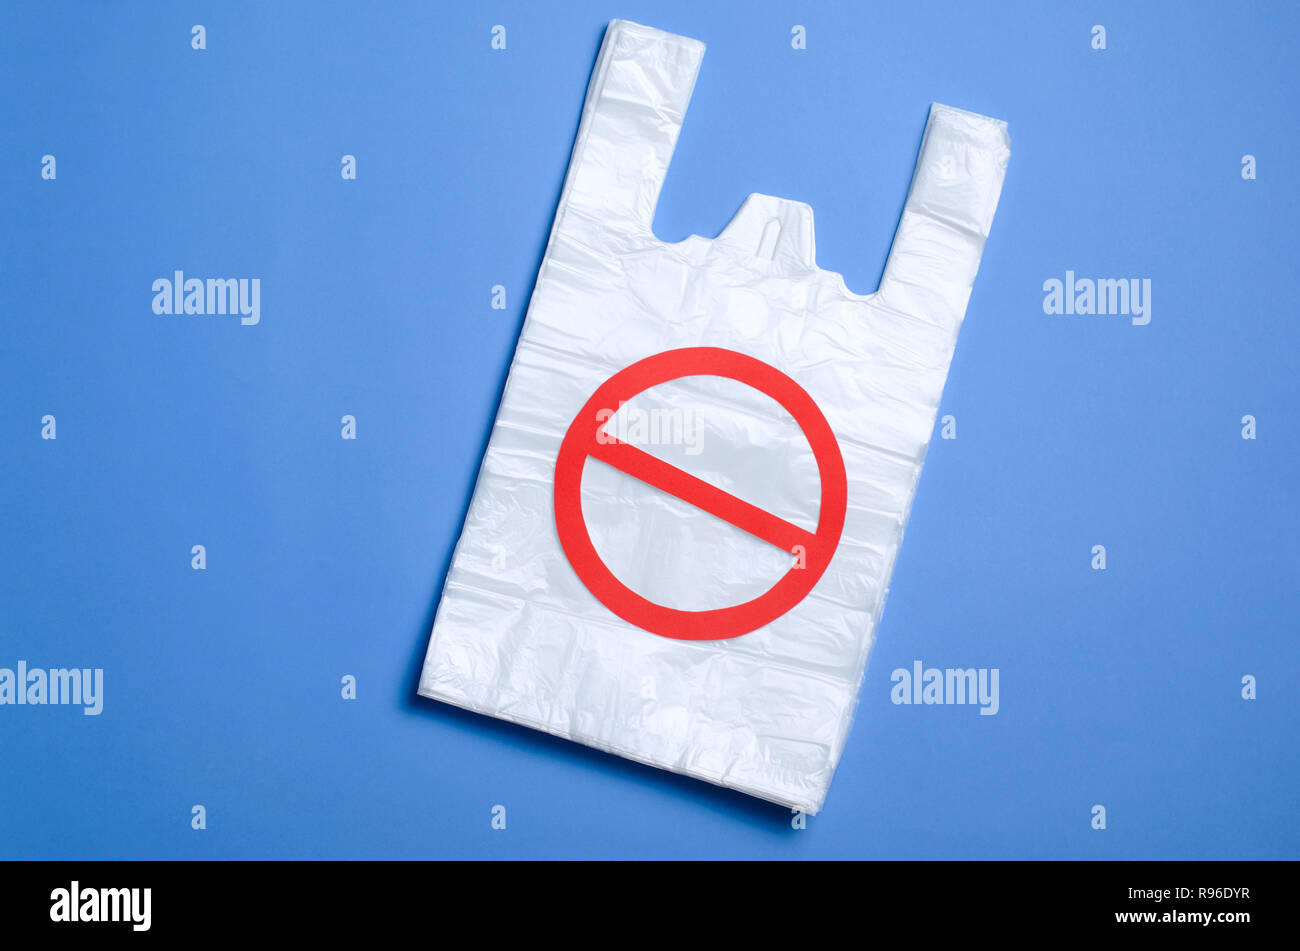 Say No to Plastic Bags, Recycle and Pollution Problem Concept - Stock Image